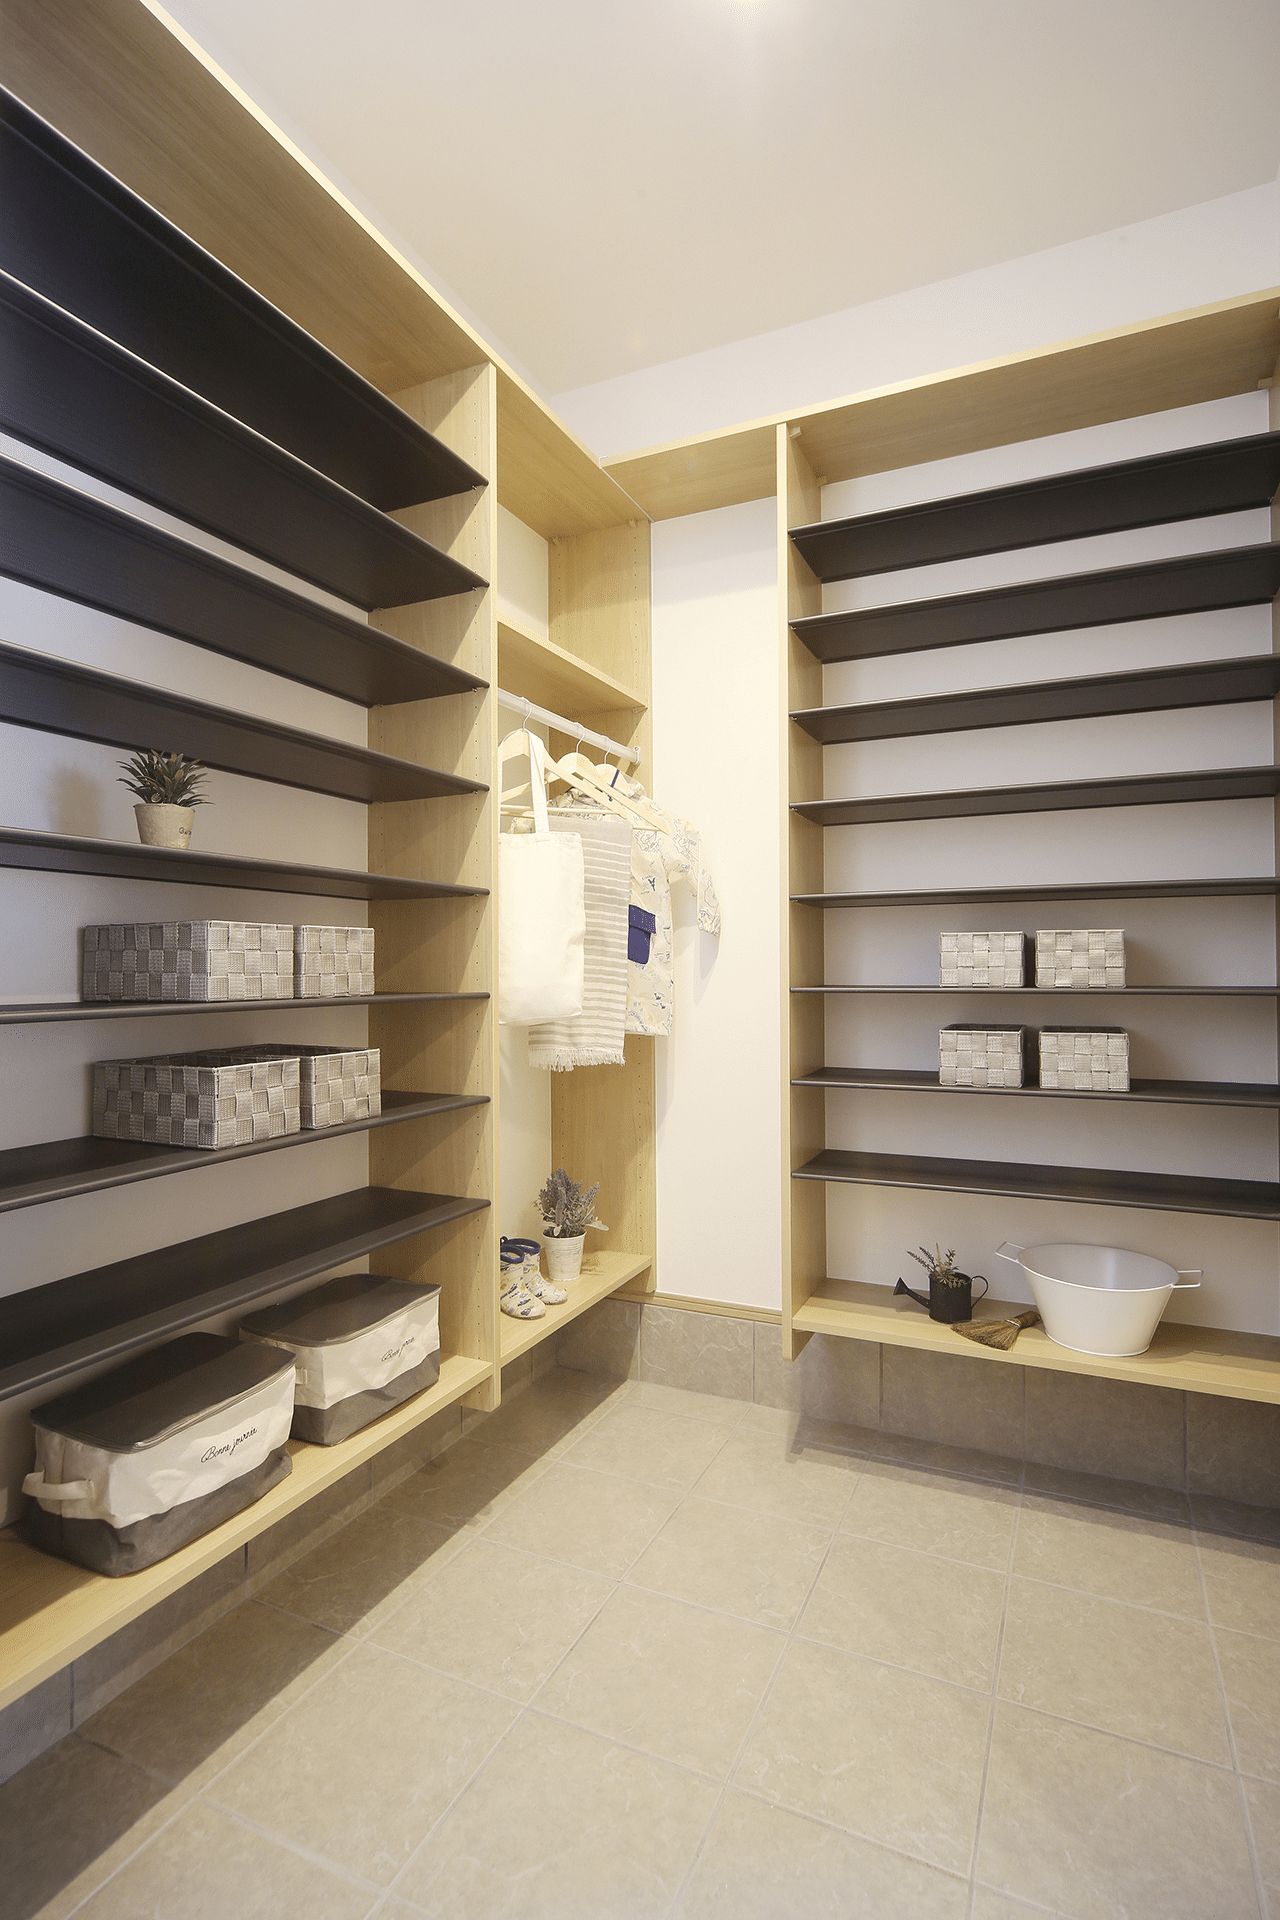 Muji inspired interior design with neutral toned wall shelves